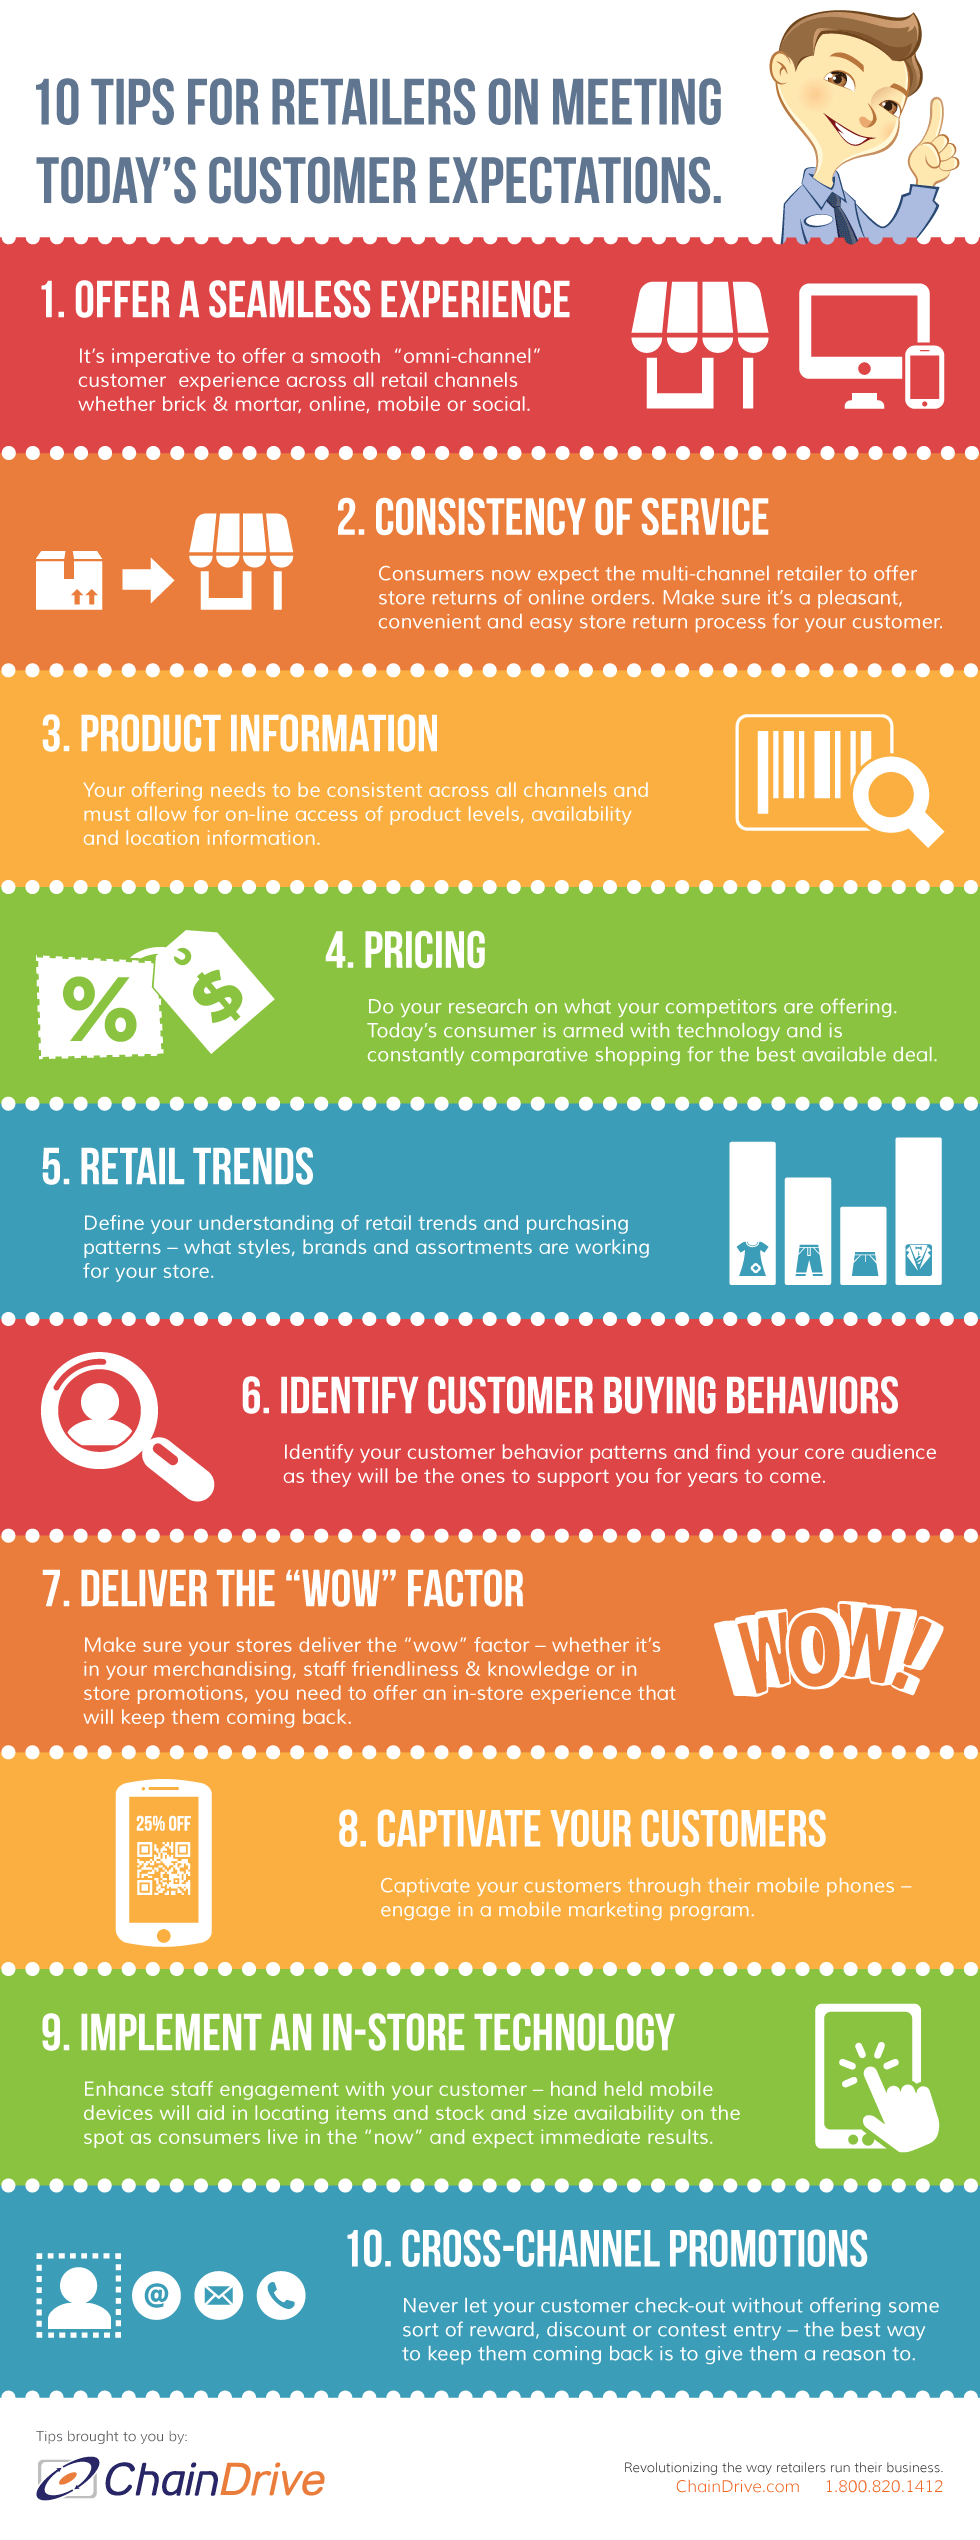 TEN TIPS FOR RETAILERS ON MEETING TODAY'S CUSTOMER EXPECTATIONS.